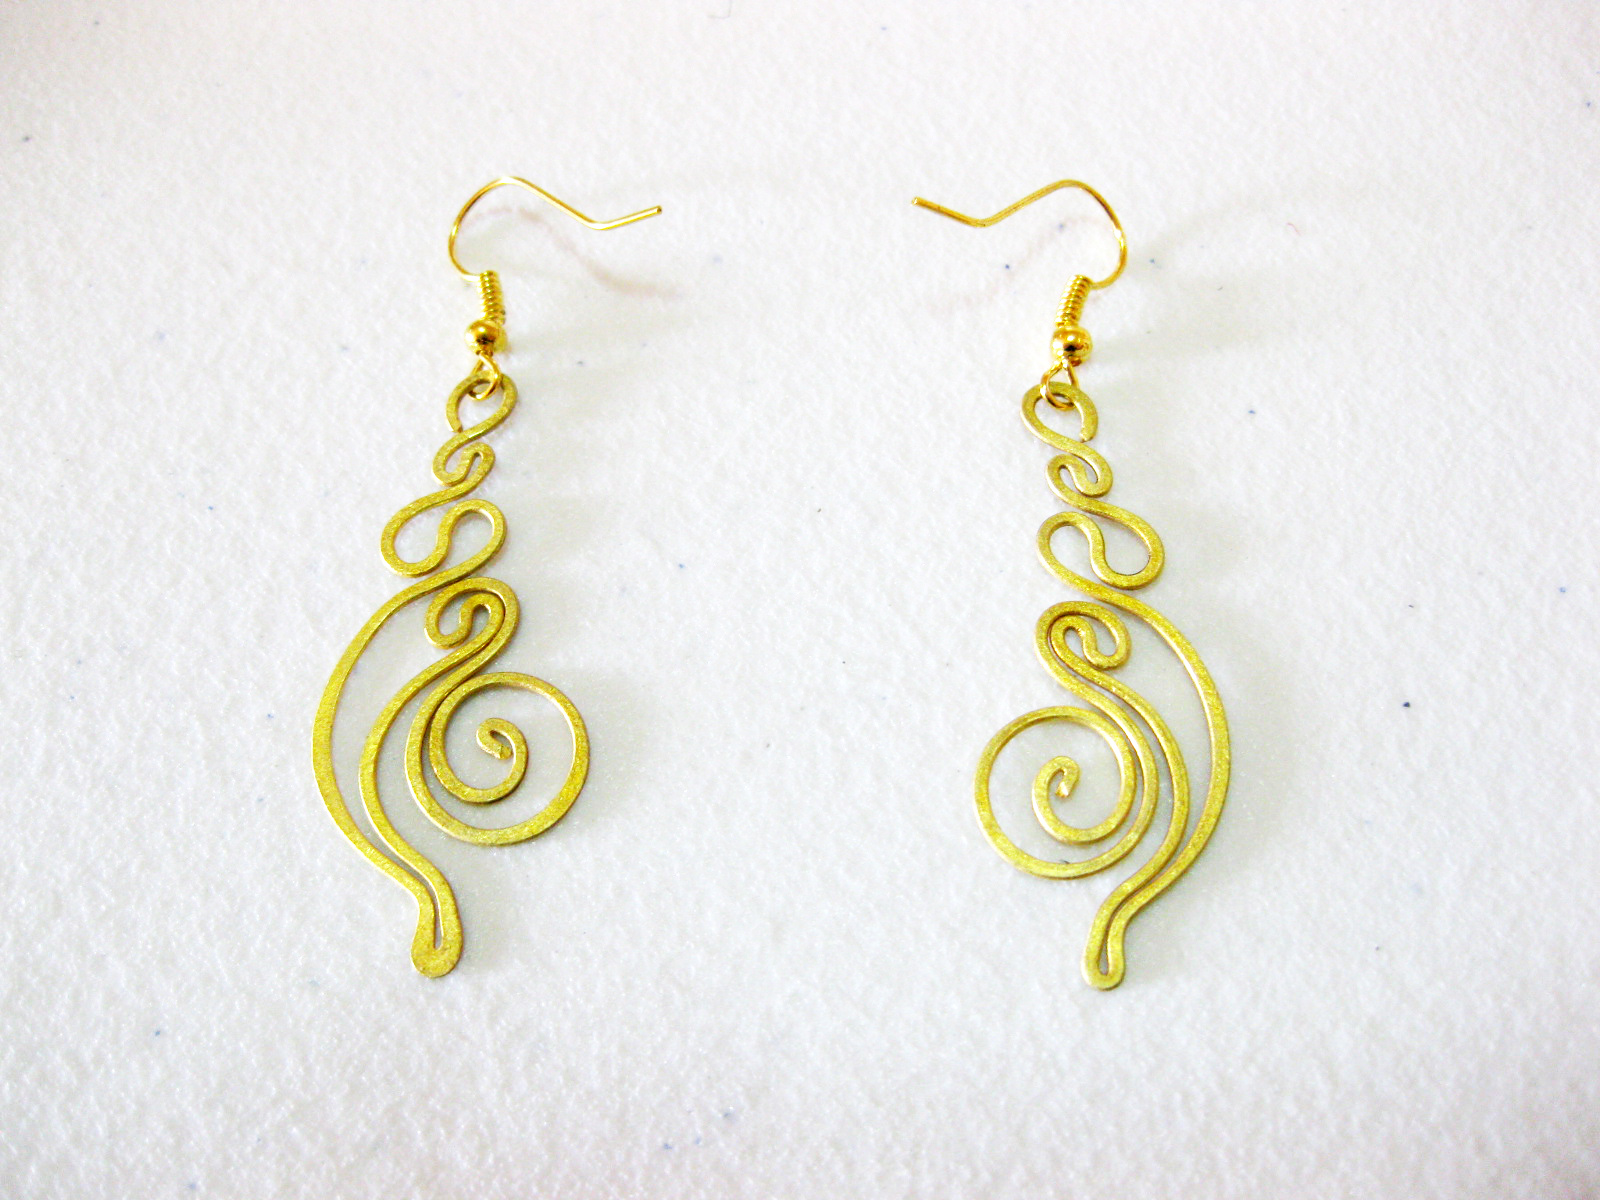 brass earrings swirl original fashion handmade thai thailand designs dangle jewelry product